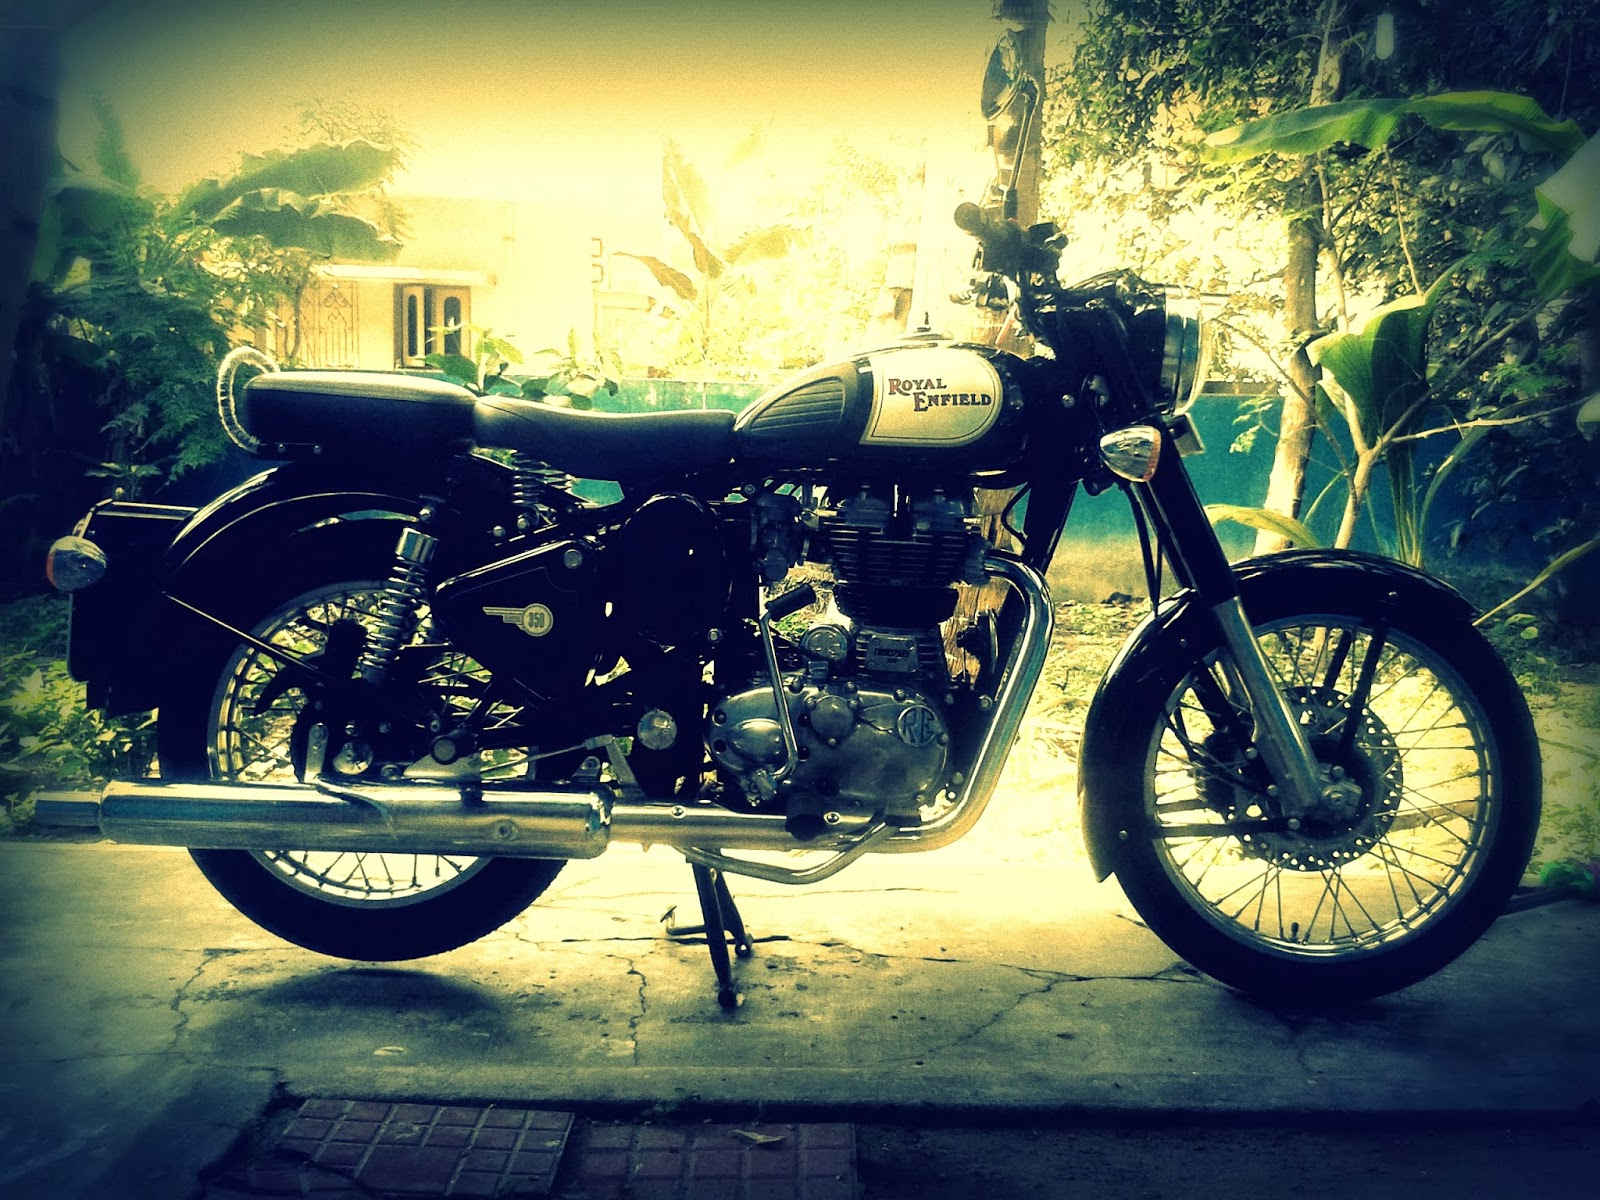 Enfield Bullet 350 Wiring Diagram Royal Enfield Wiring Diagram Royal